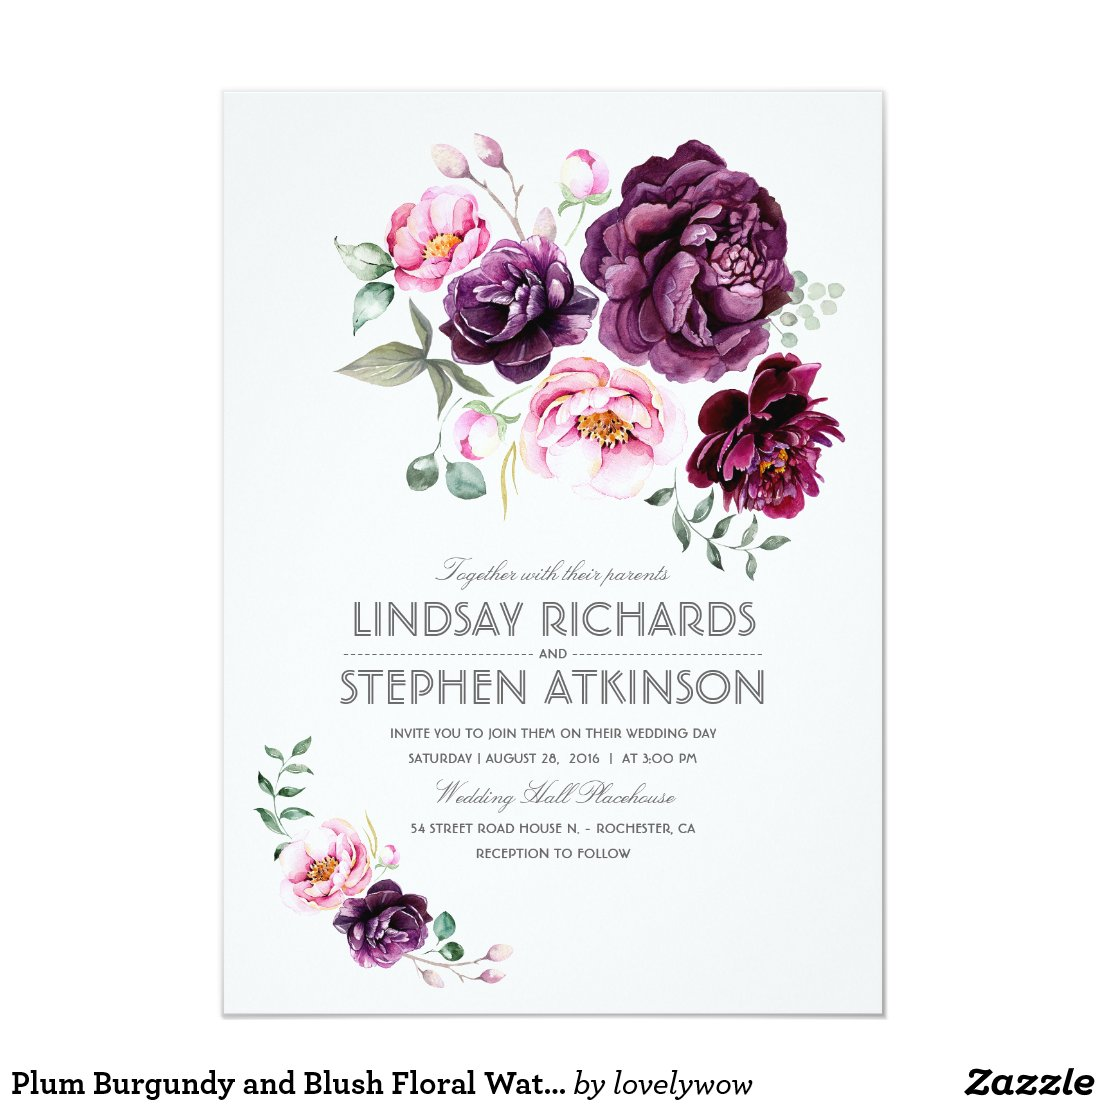 Rustic Boho Wedding Invitation with Purple Burgundy and Blush Flowers